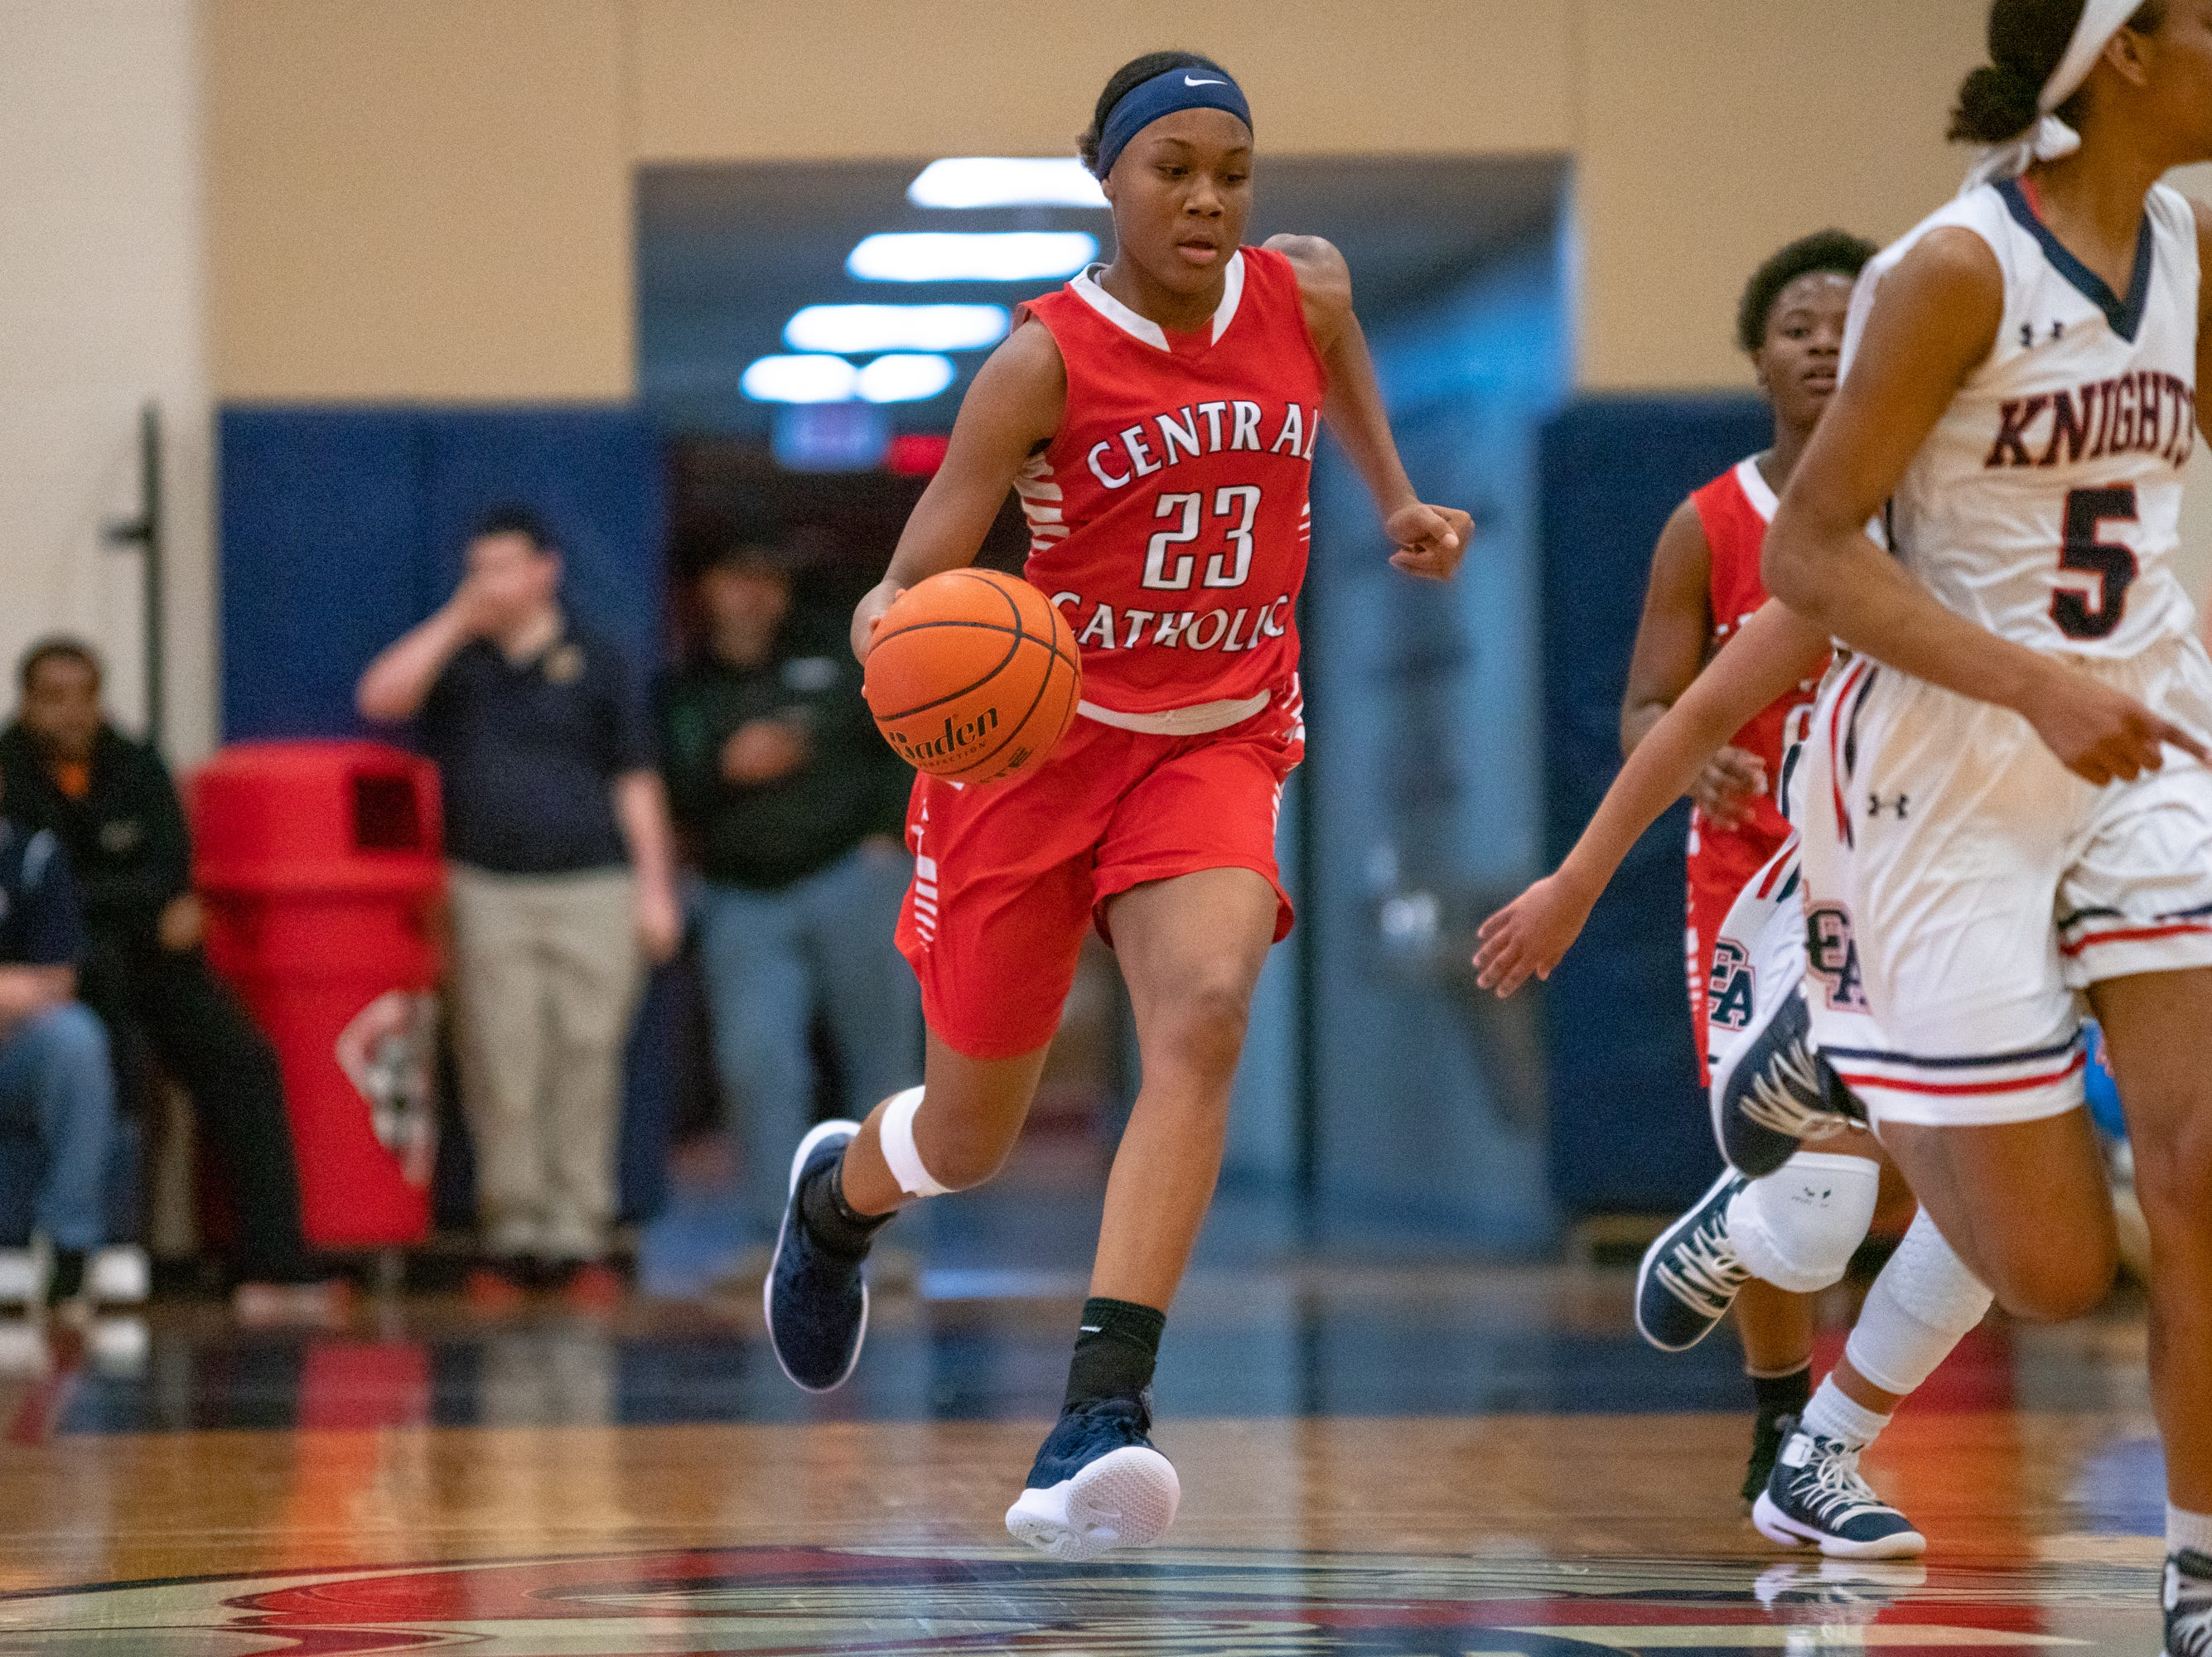 Central Catholic's Yani Johnson moves the ball down the court as the LCA Knights take on the Central Catholic Eagles at home on Thursday, Feb. 21, 2019.